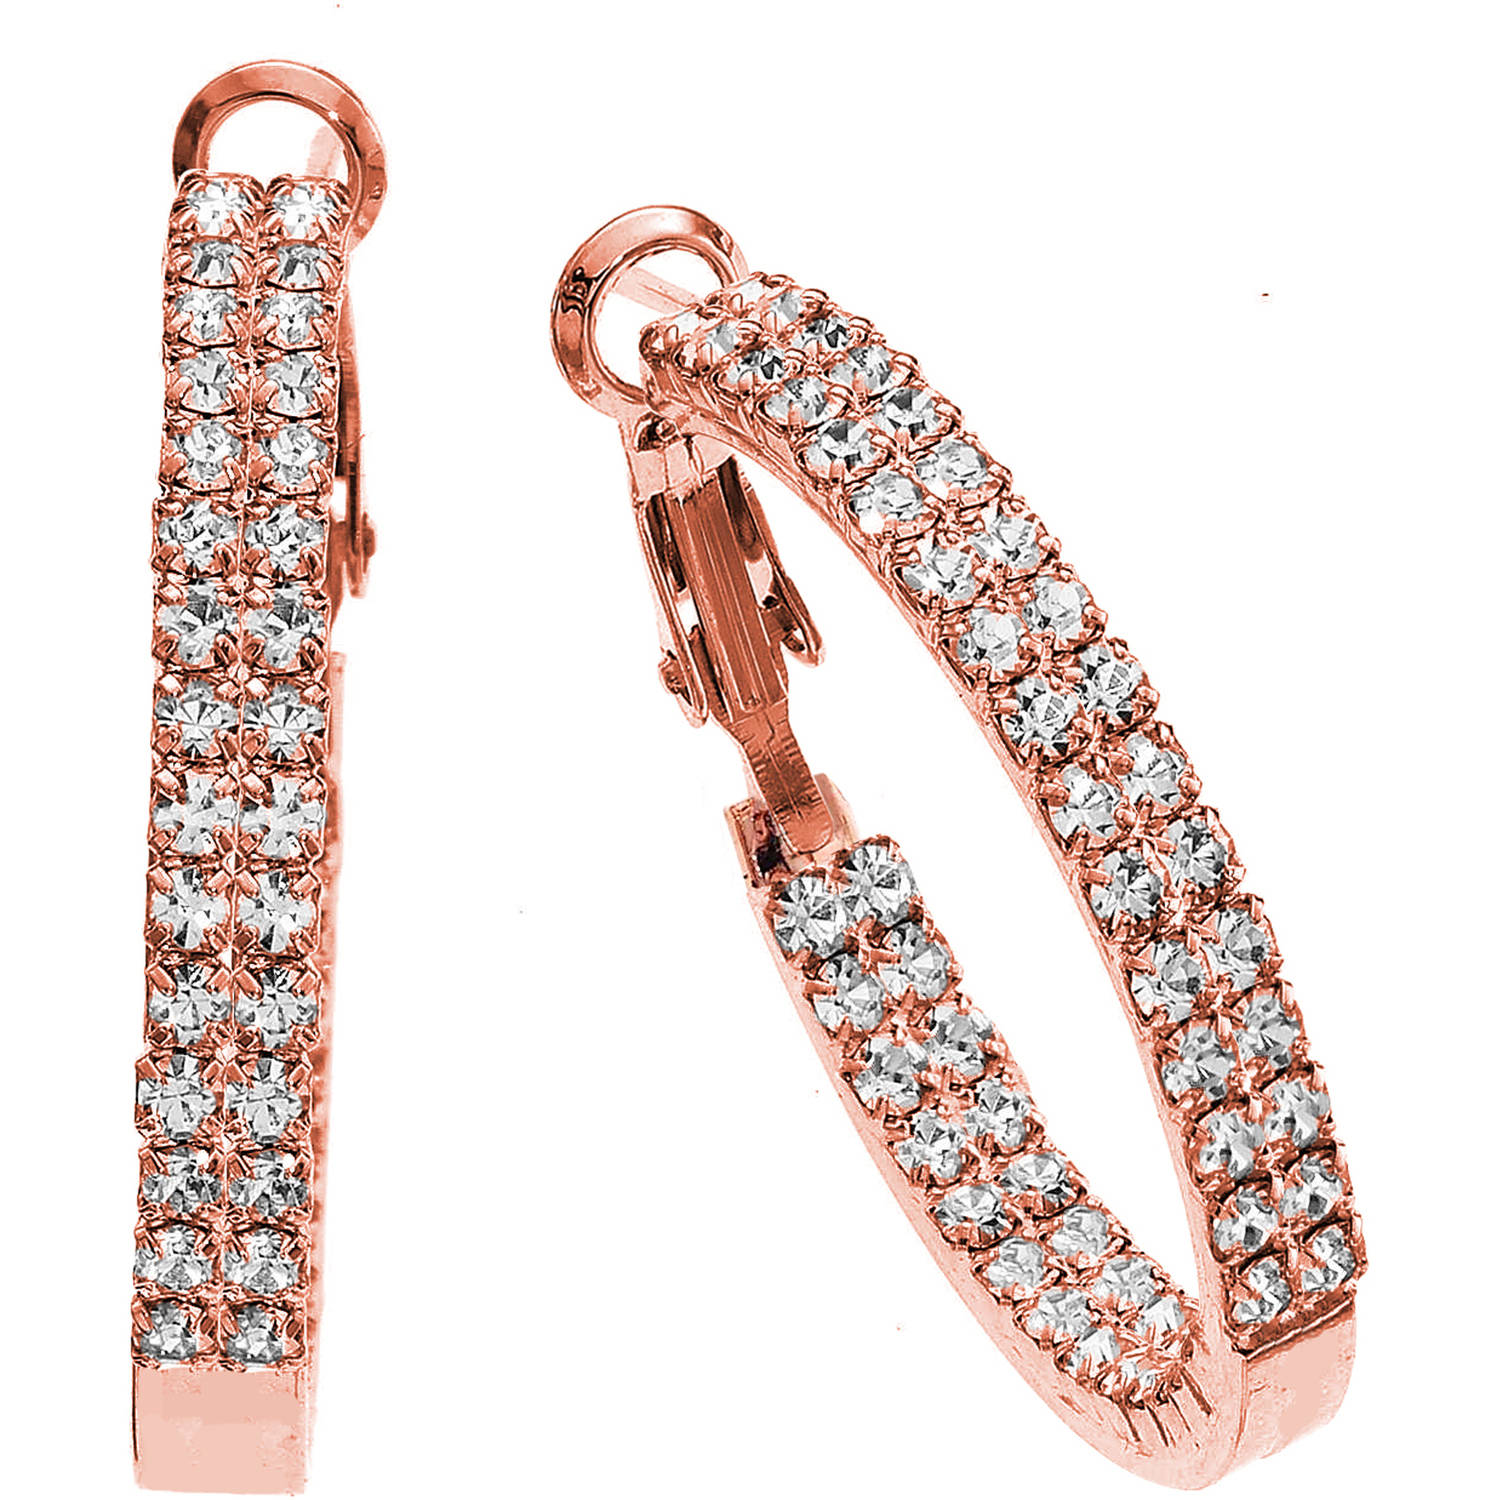 X & O Handset Austrian Crystal 30mm Rose Gold-Plated Twin-Row Inside-Out Earrings